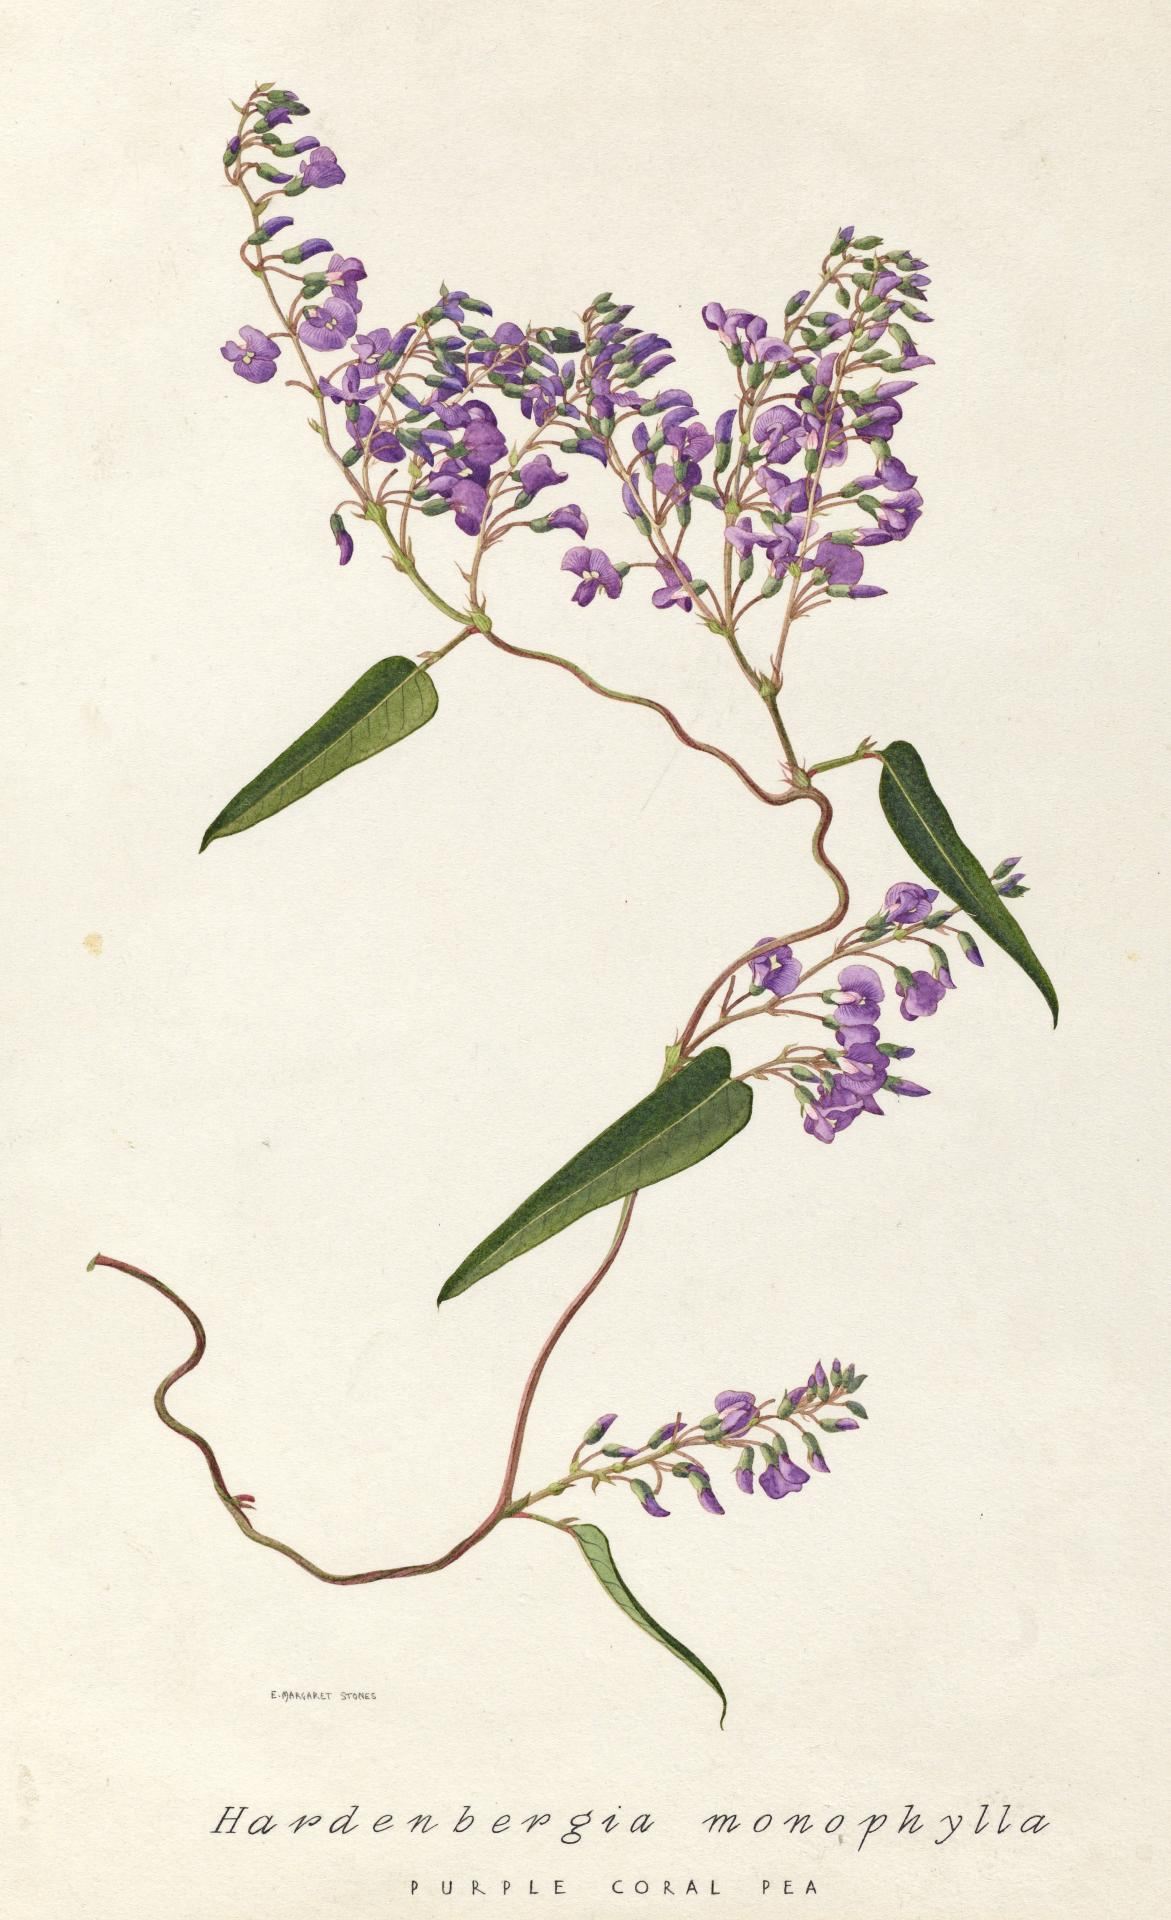 Hardenbergia monophylla (Purple coral pea)